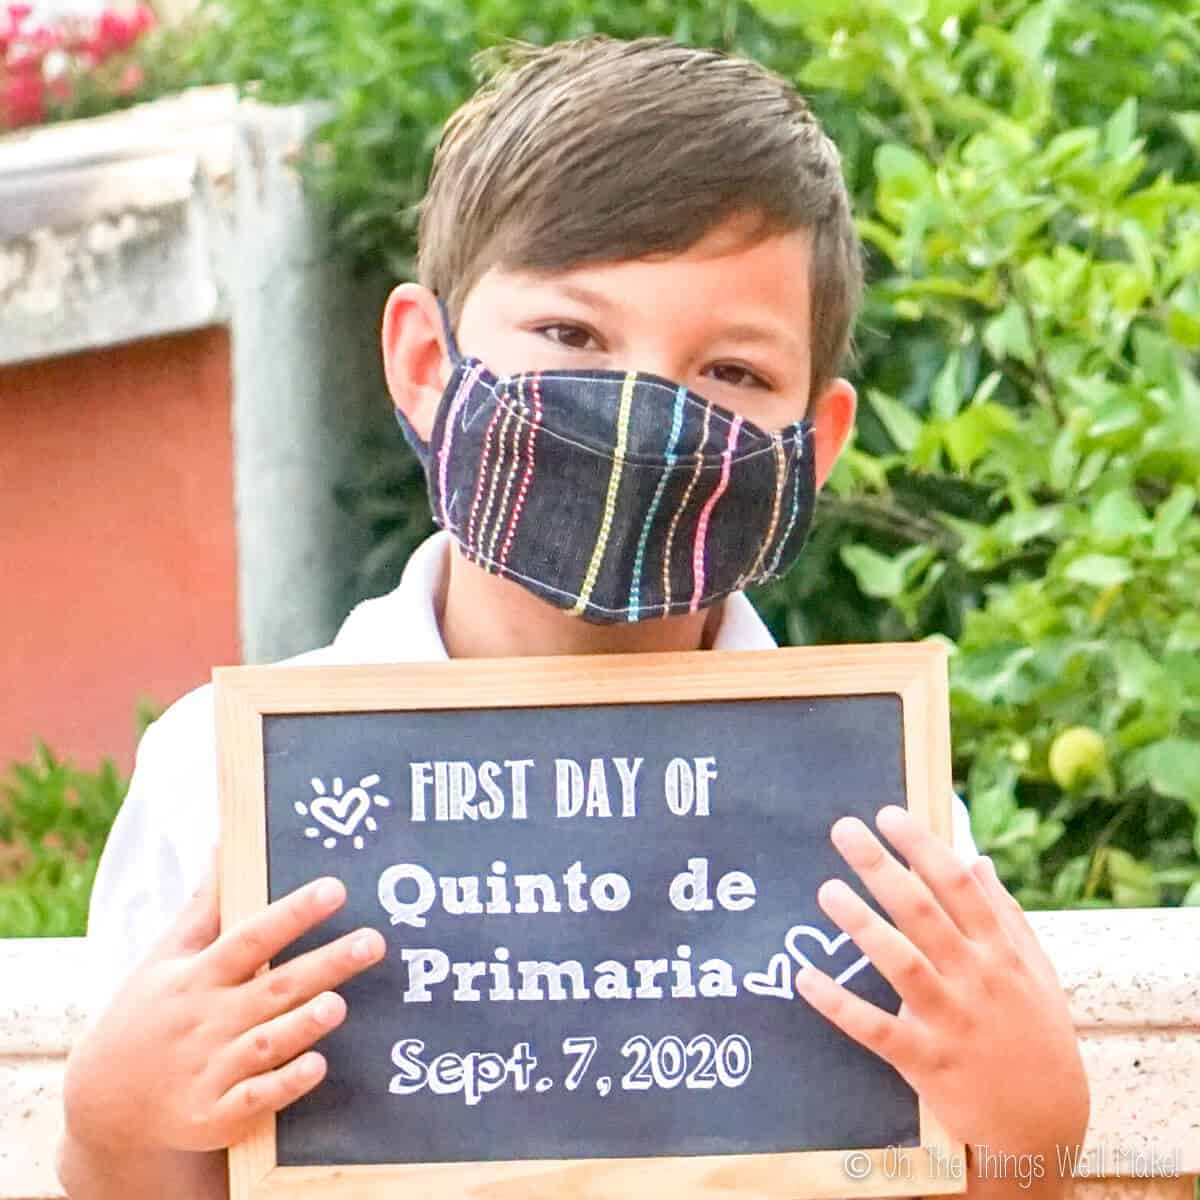 A boy wearing a face mask and holding a first day of school sign